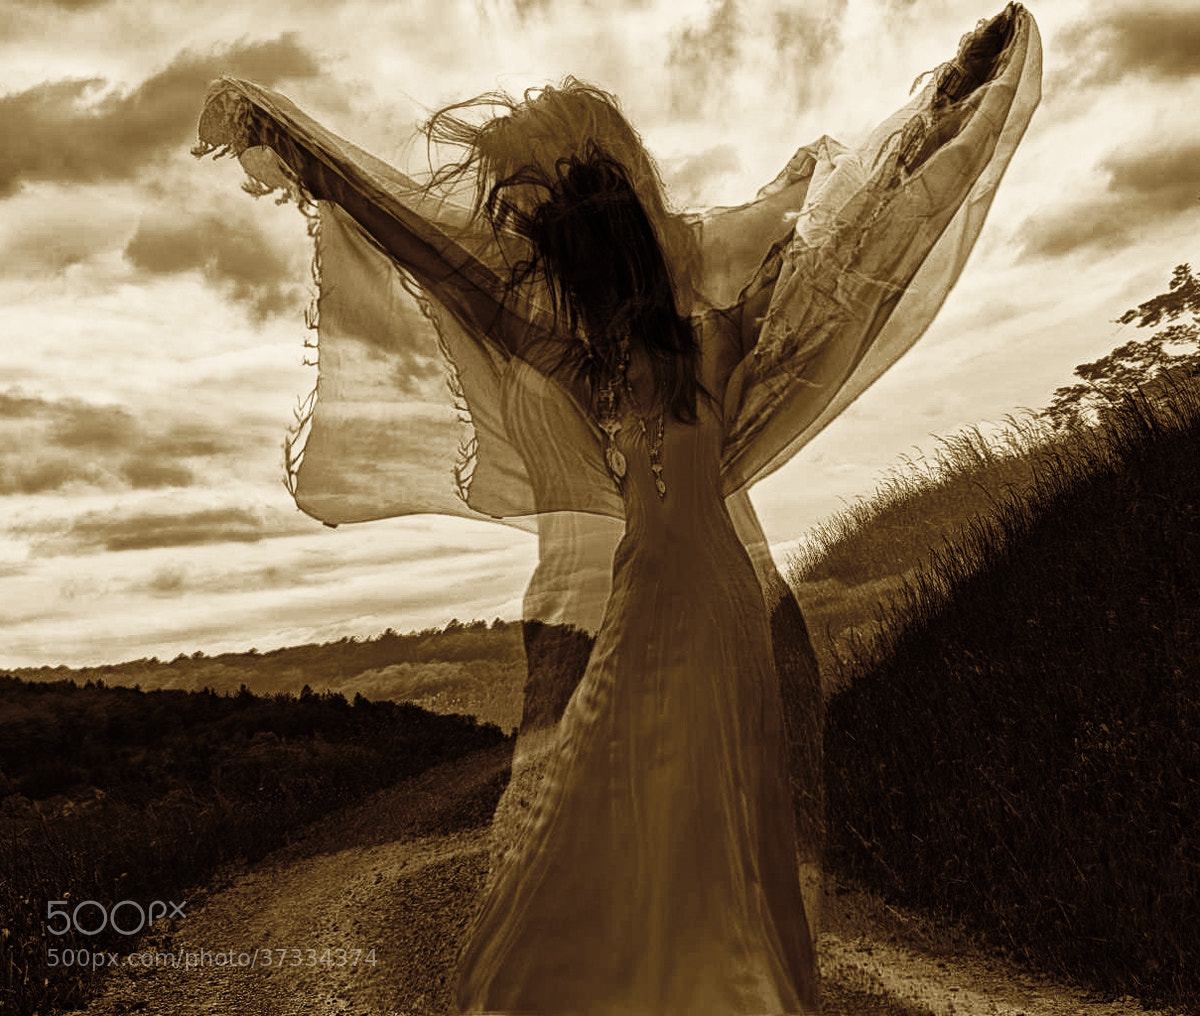 Photograph Send me an angel by Photographix_by_Moni on 500px